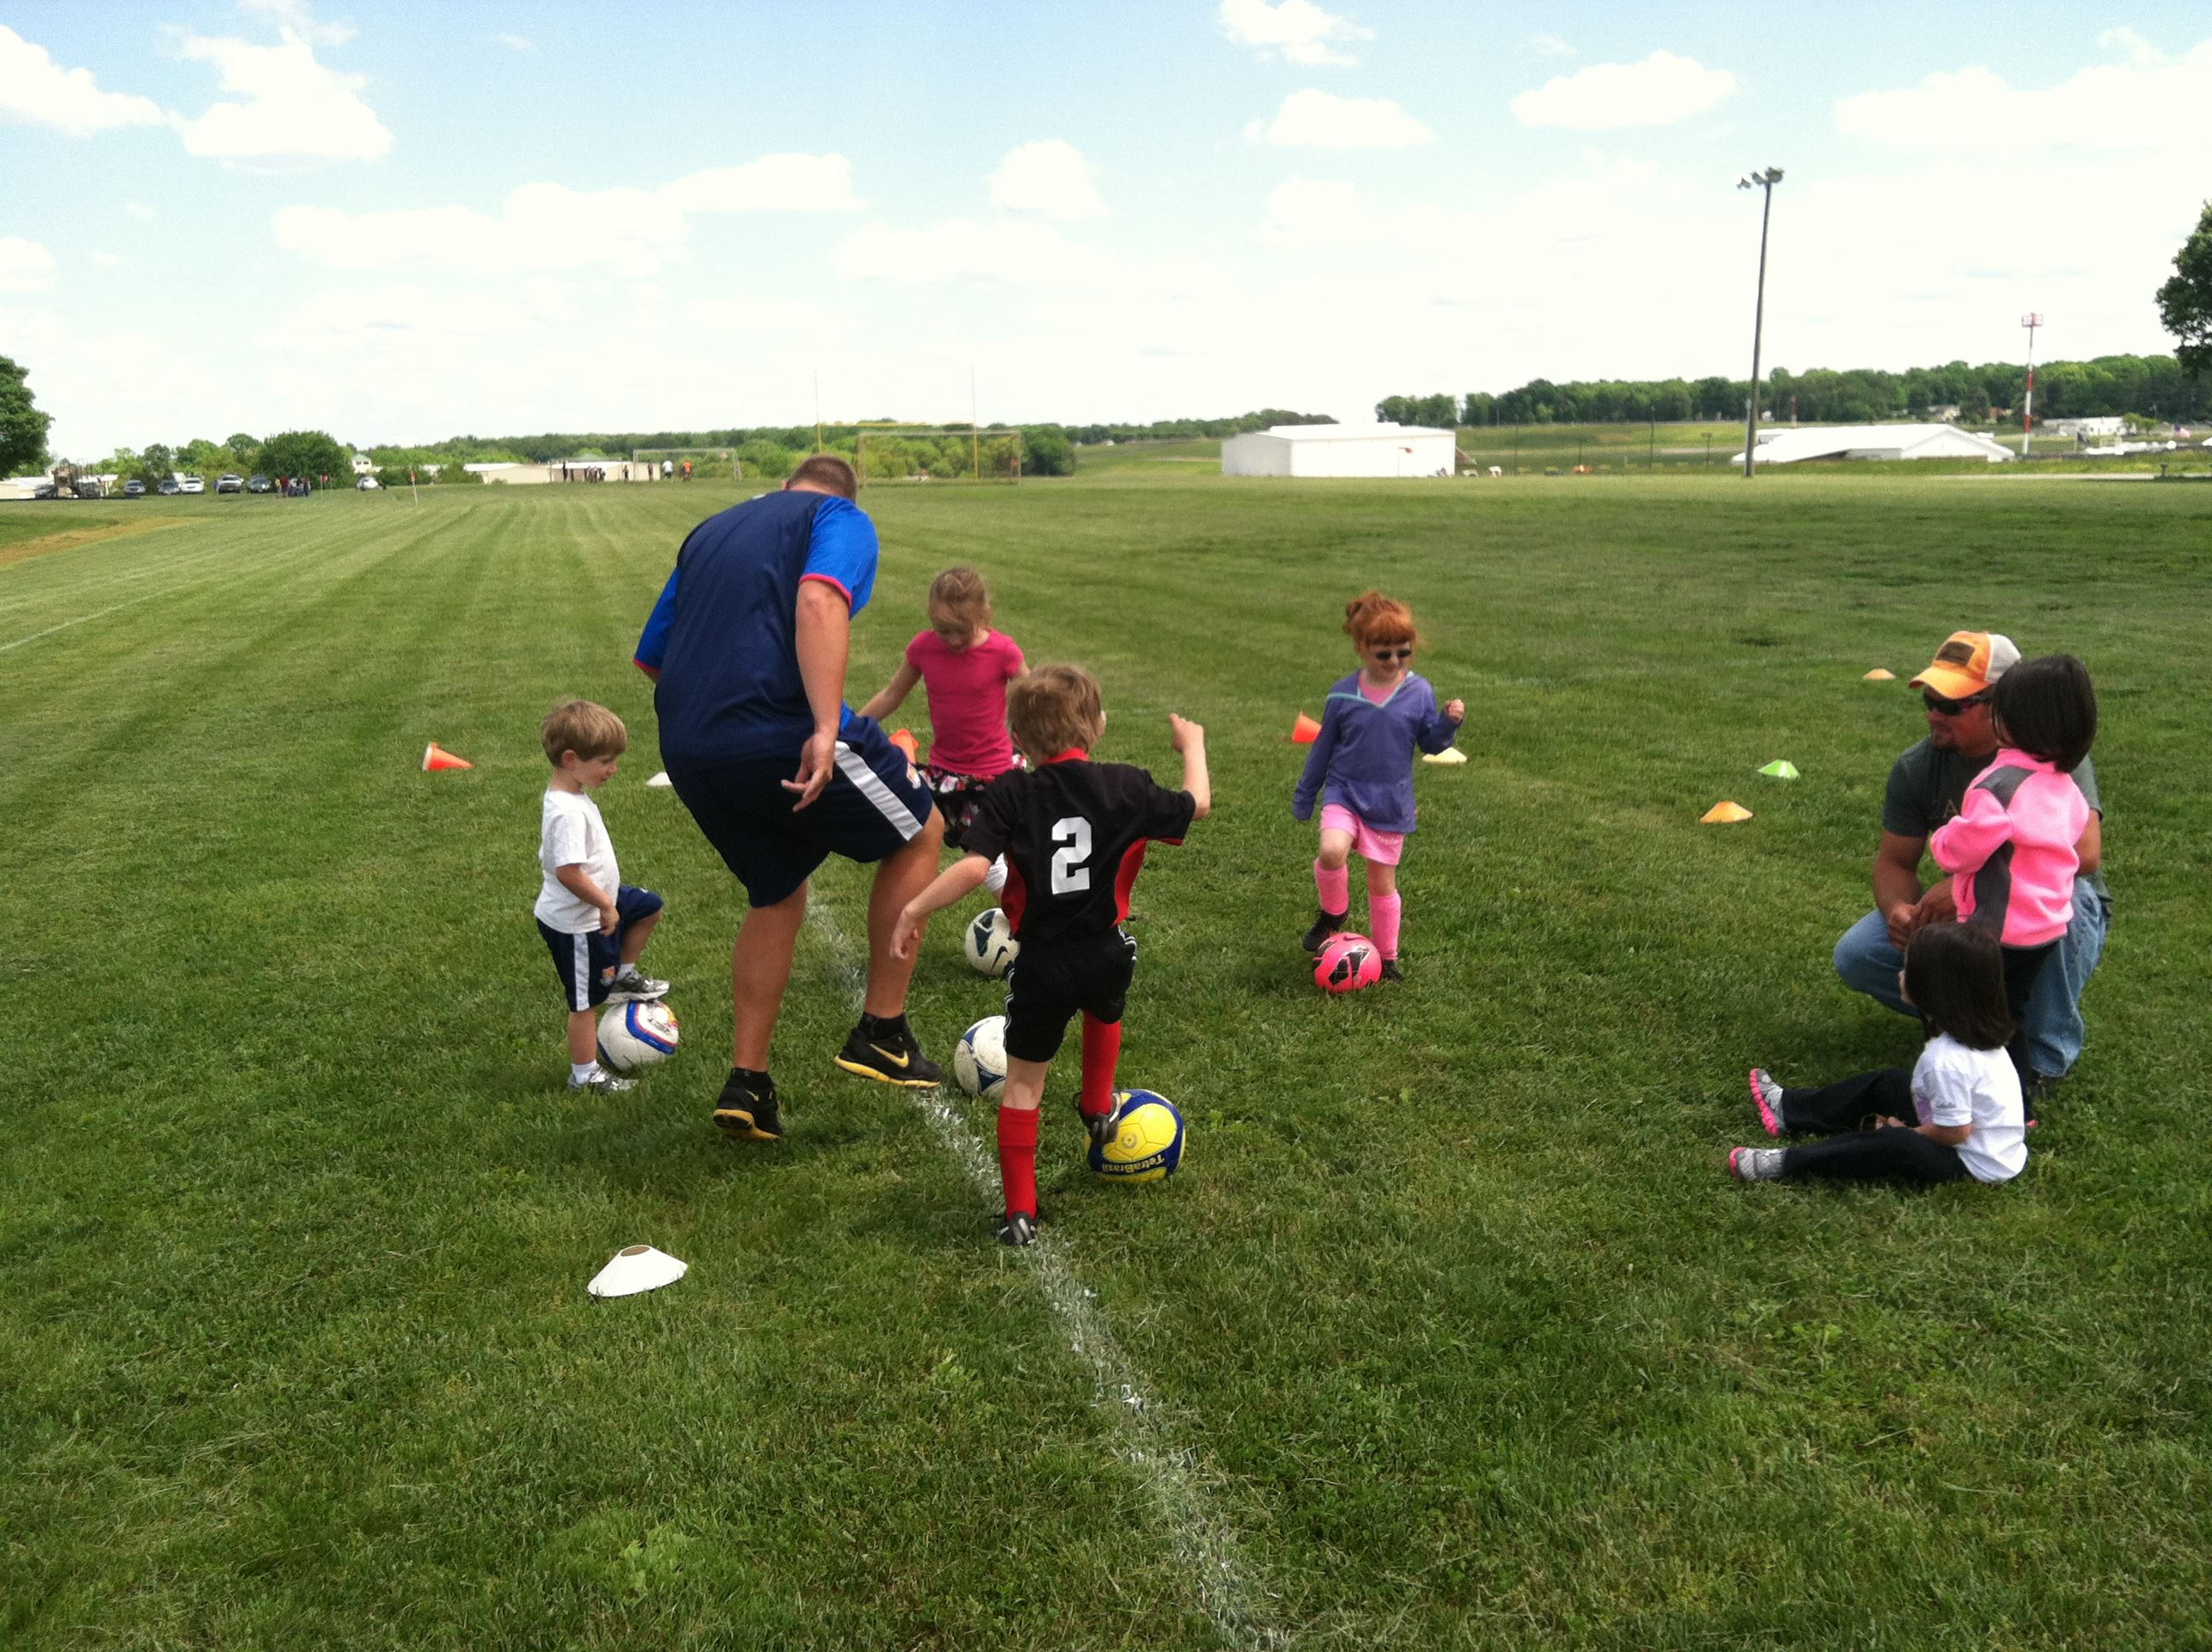 Participants practice at an OCPR Challenger Sports Soccer program.